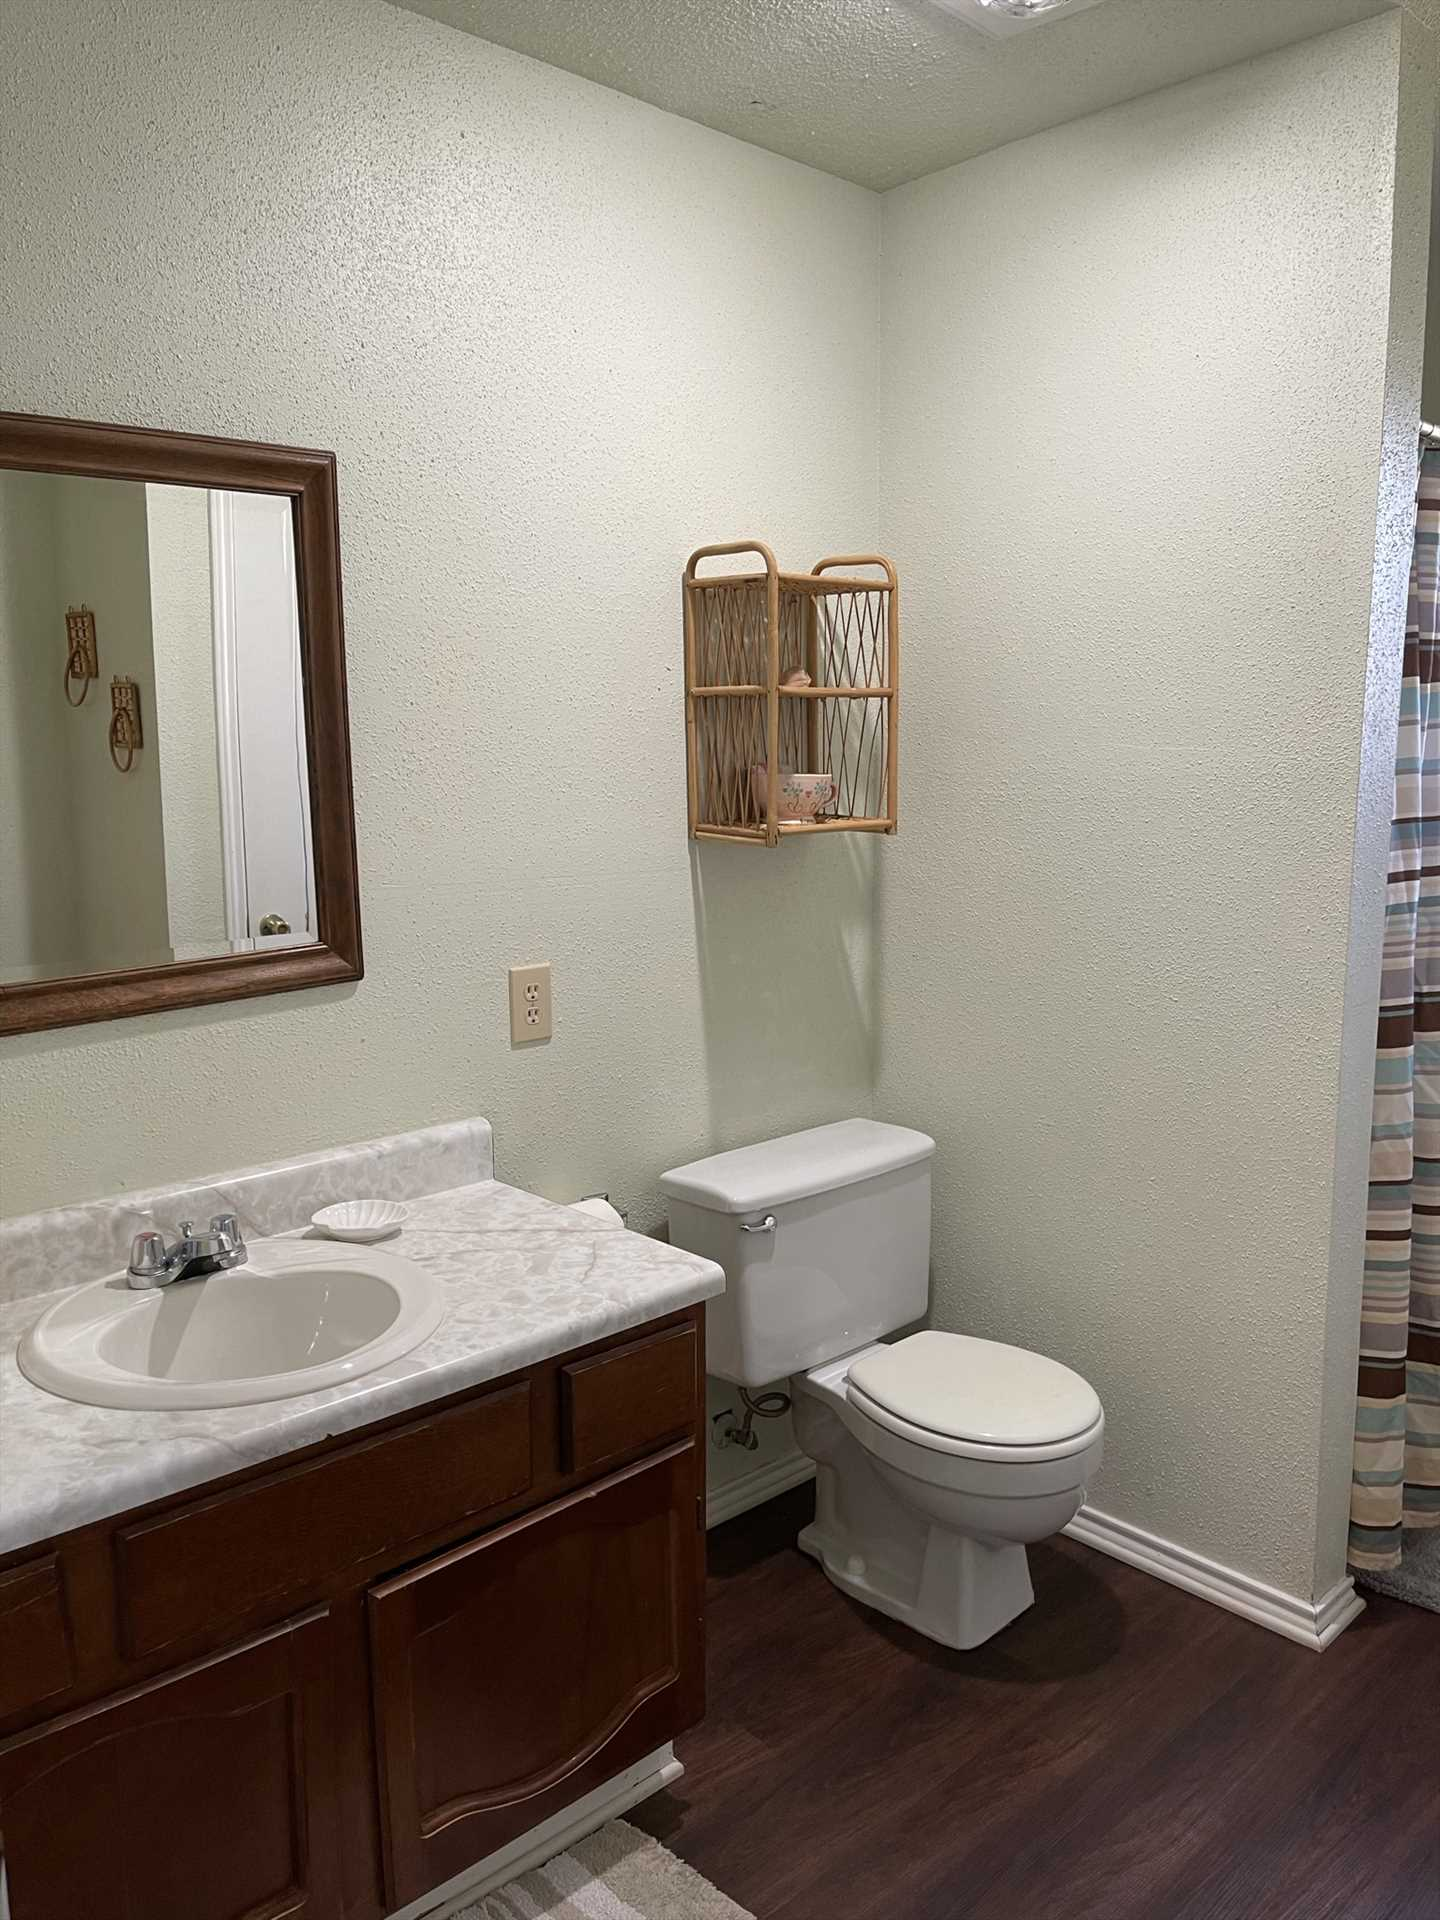 The full bath is sparking clean, and features a large vanity and shower for cleaning up! Bath linens are included, too.